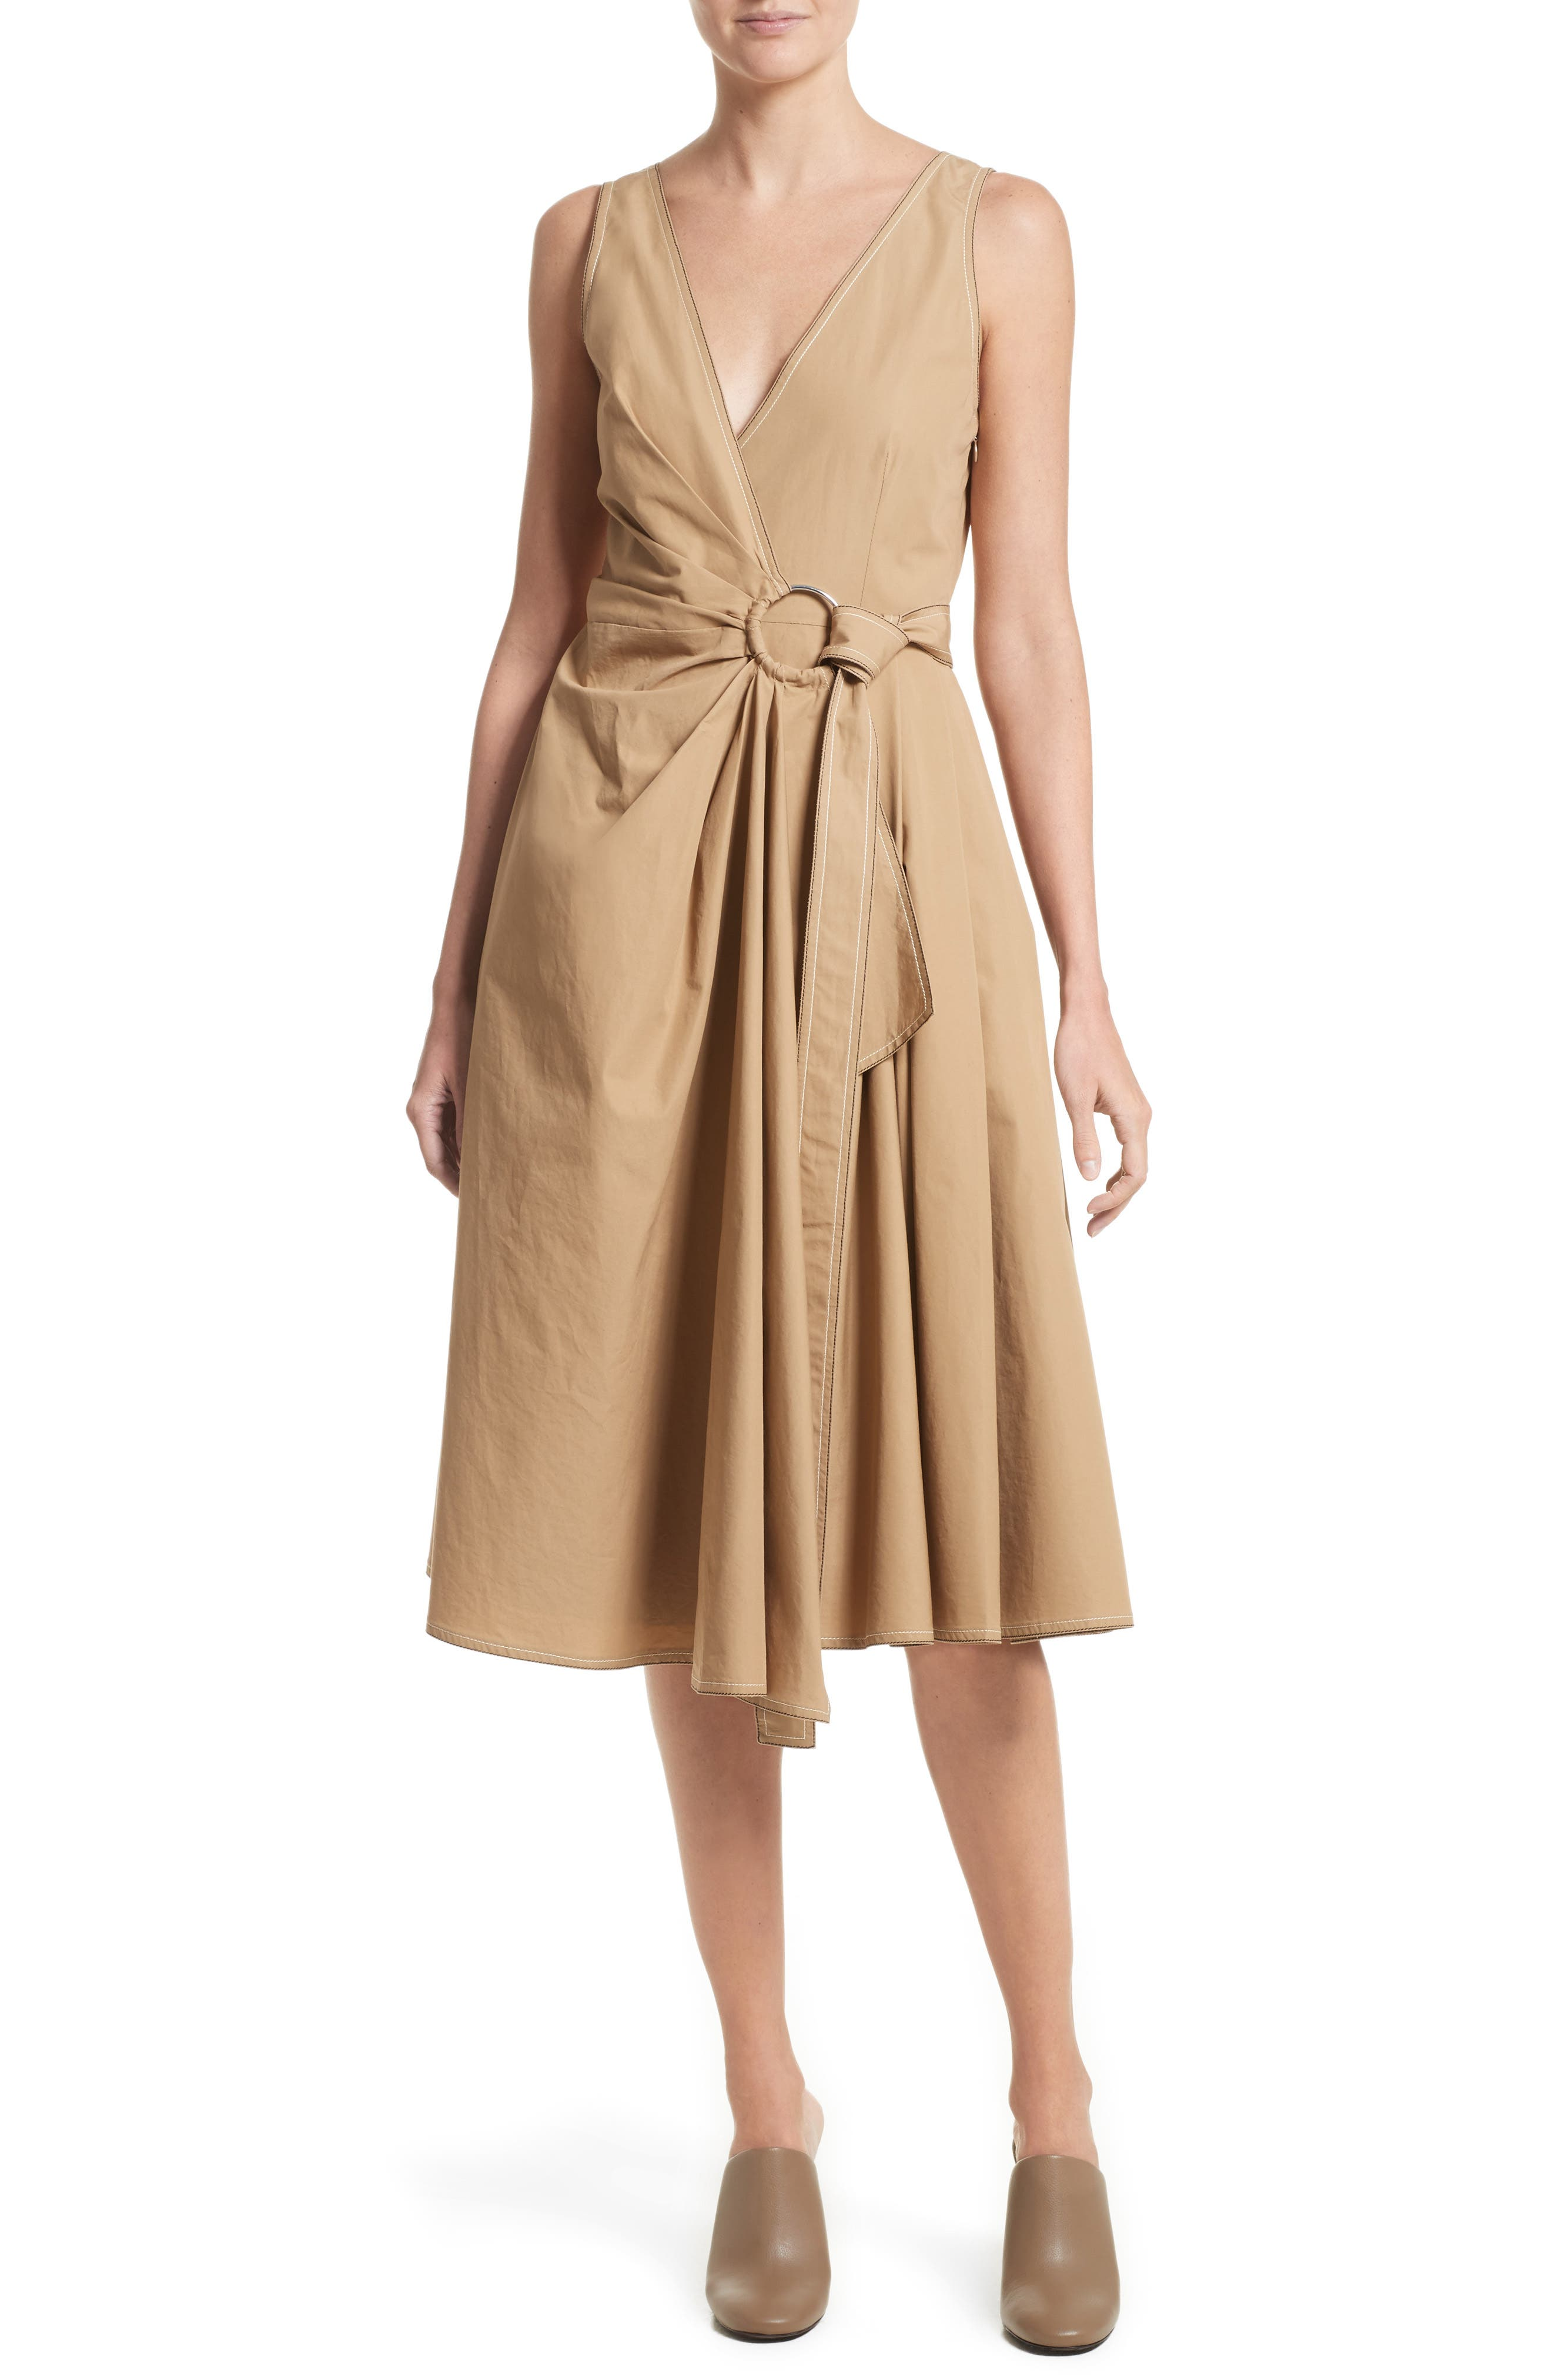 Derek Lam 10 Crosby Pleated Wrap Dress